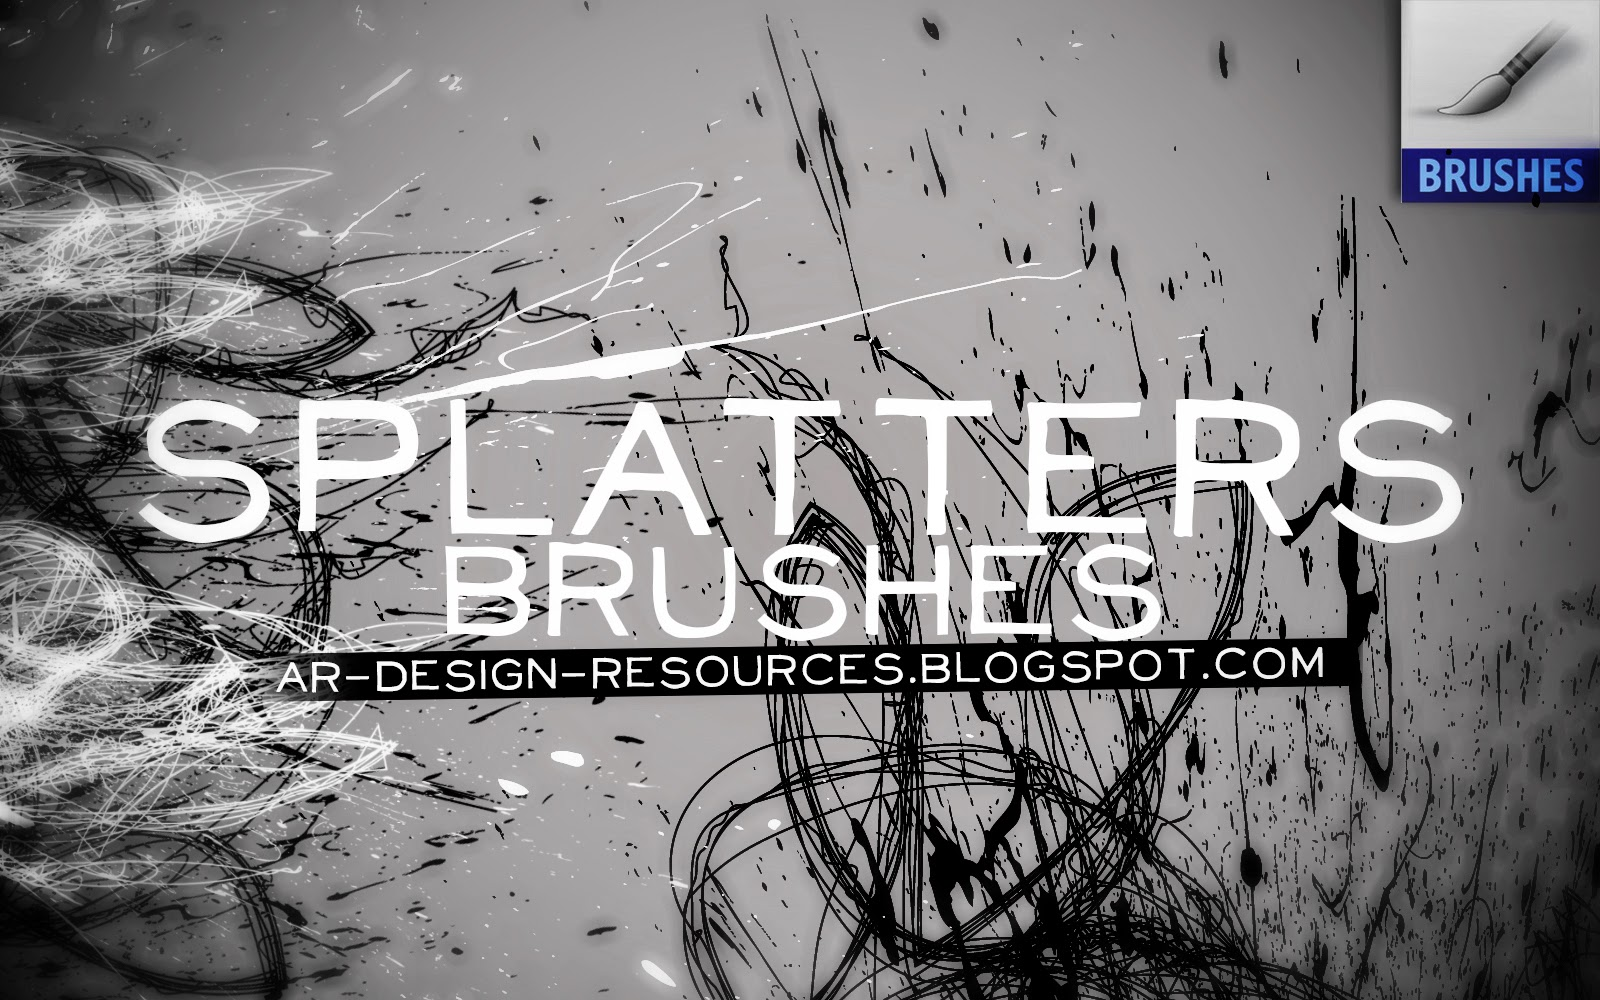 10 High-Res Splatters Brushes